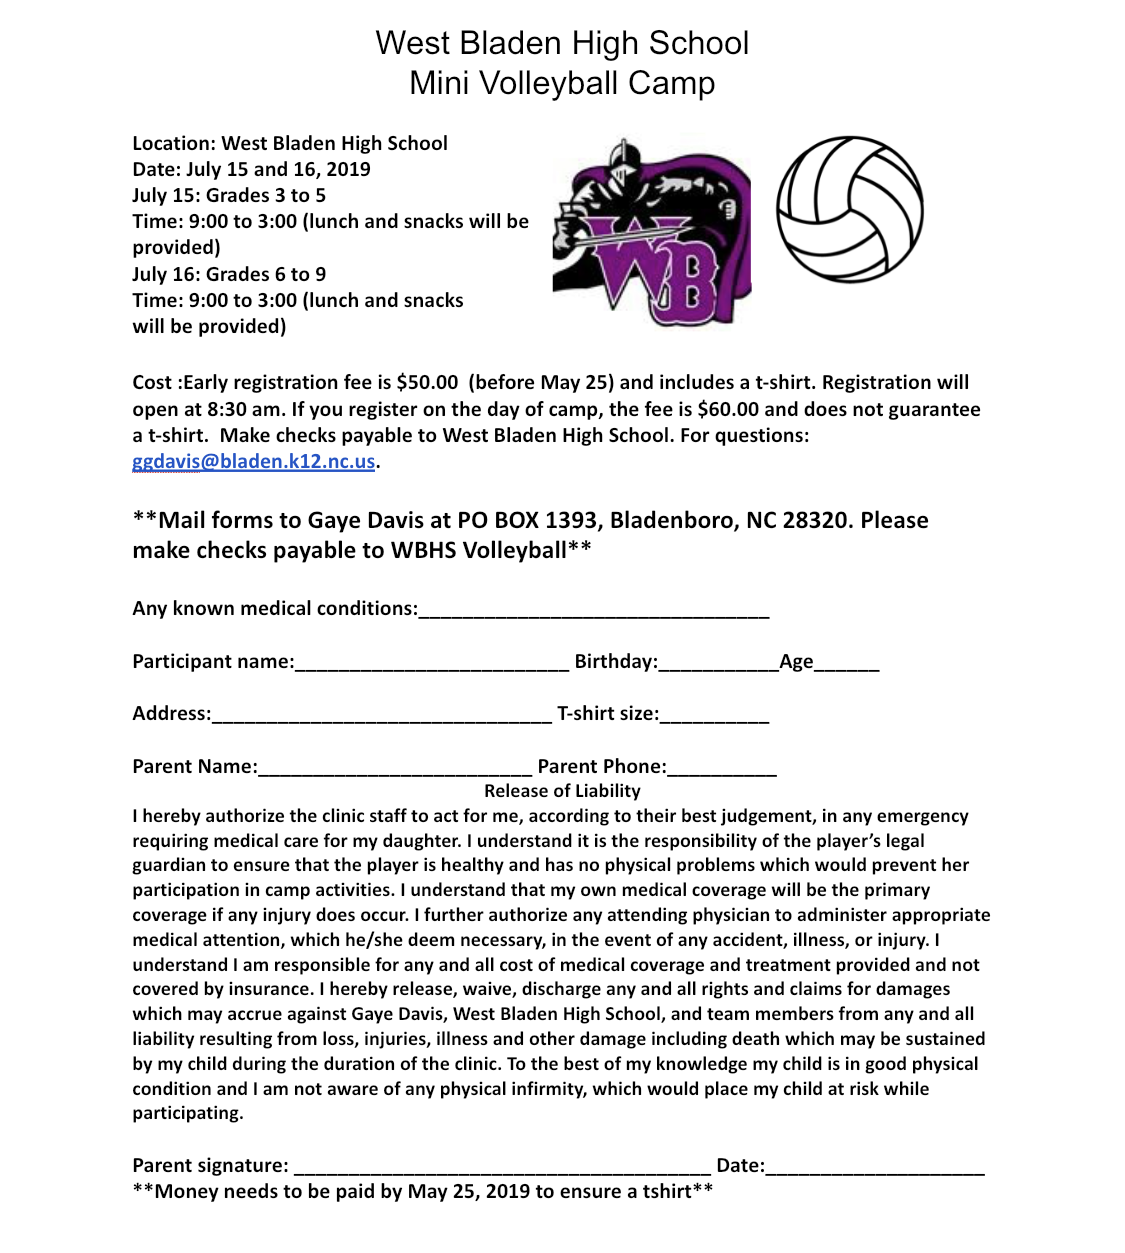 West Bladen High School Mini Volleyball Camp